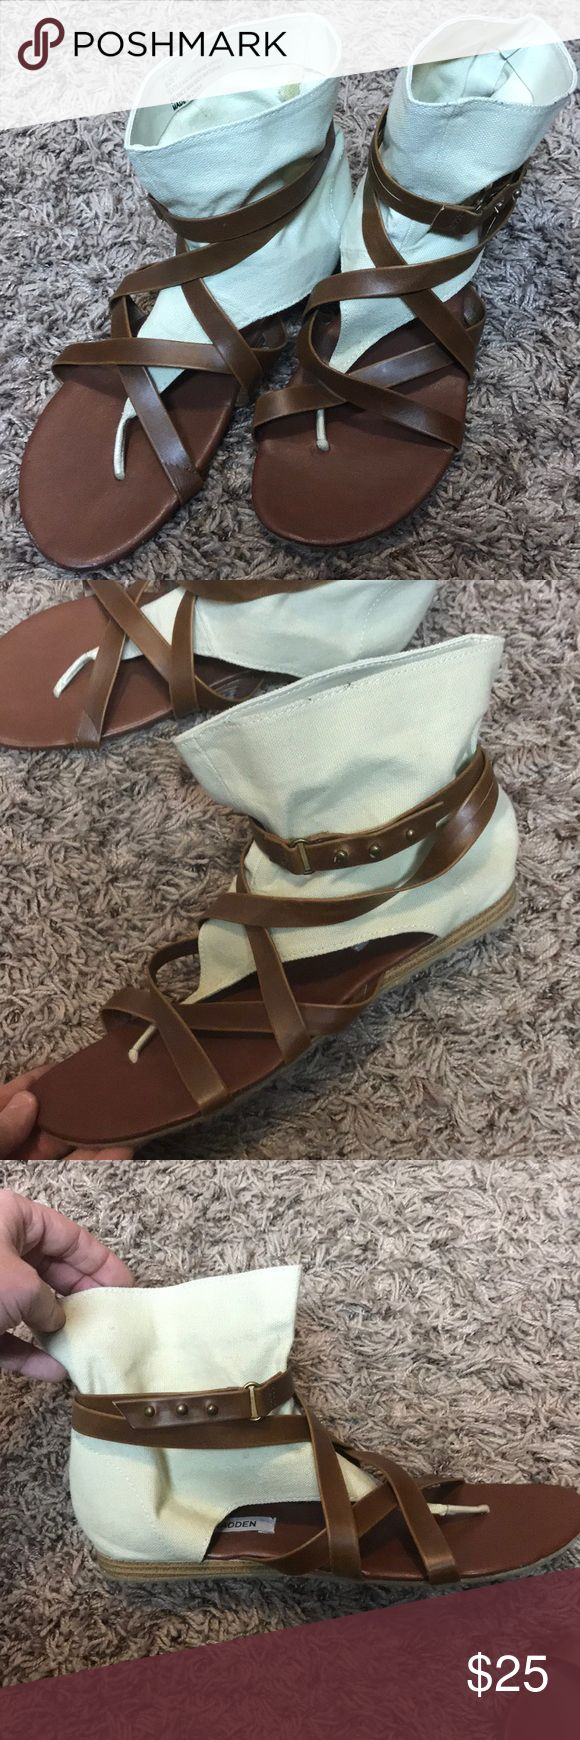 STEVE MADDEN Gladiator Sandals Very cute & stylish gladiator sandals with cream fabric! BNWOT, One small flaw in left back heel Steve Madden Shoes Sandals